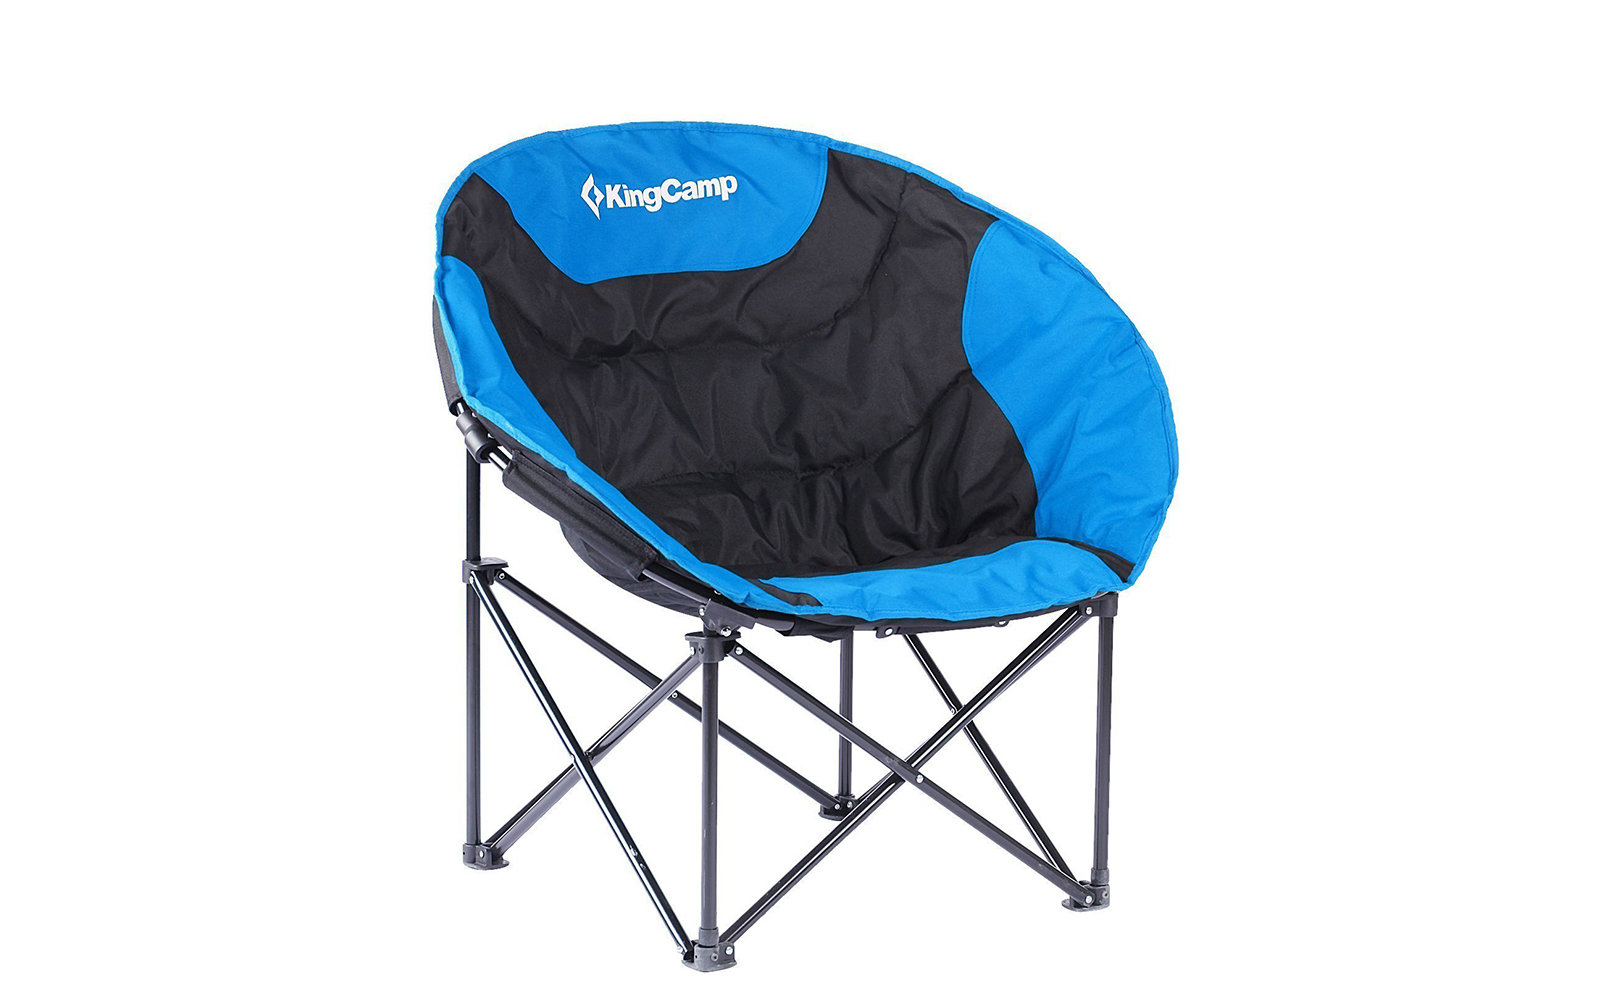 Astounding The Best Folding Camping Chairs Travel Leisure Andrewgaddart Wooden Chair Designs For Living Room Andrewgaddartcom